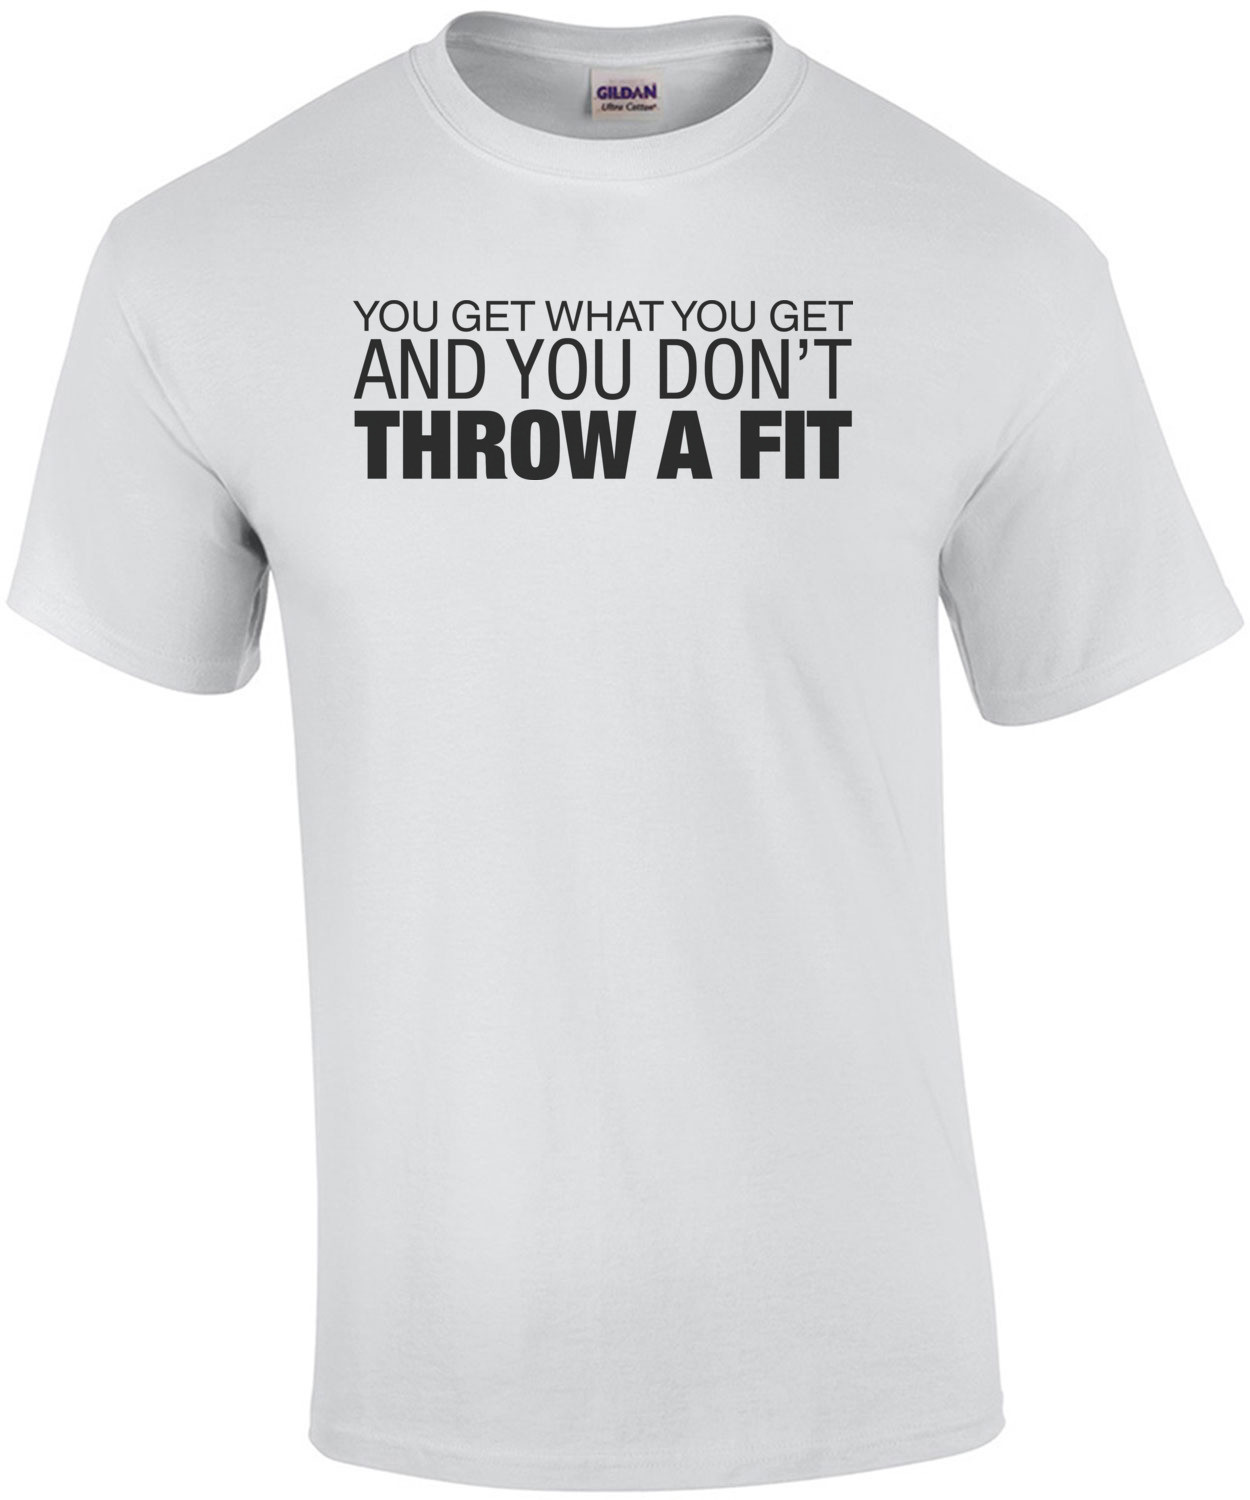 You Get What You Get and You Don't Throw a Fit Shirt